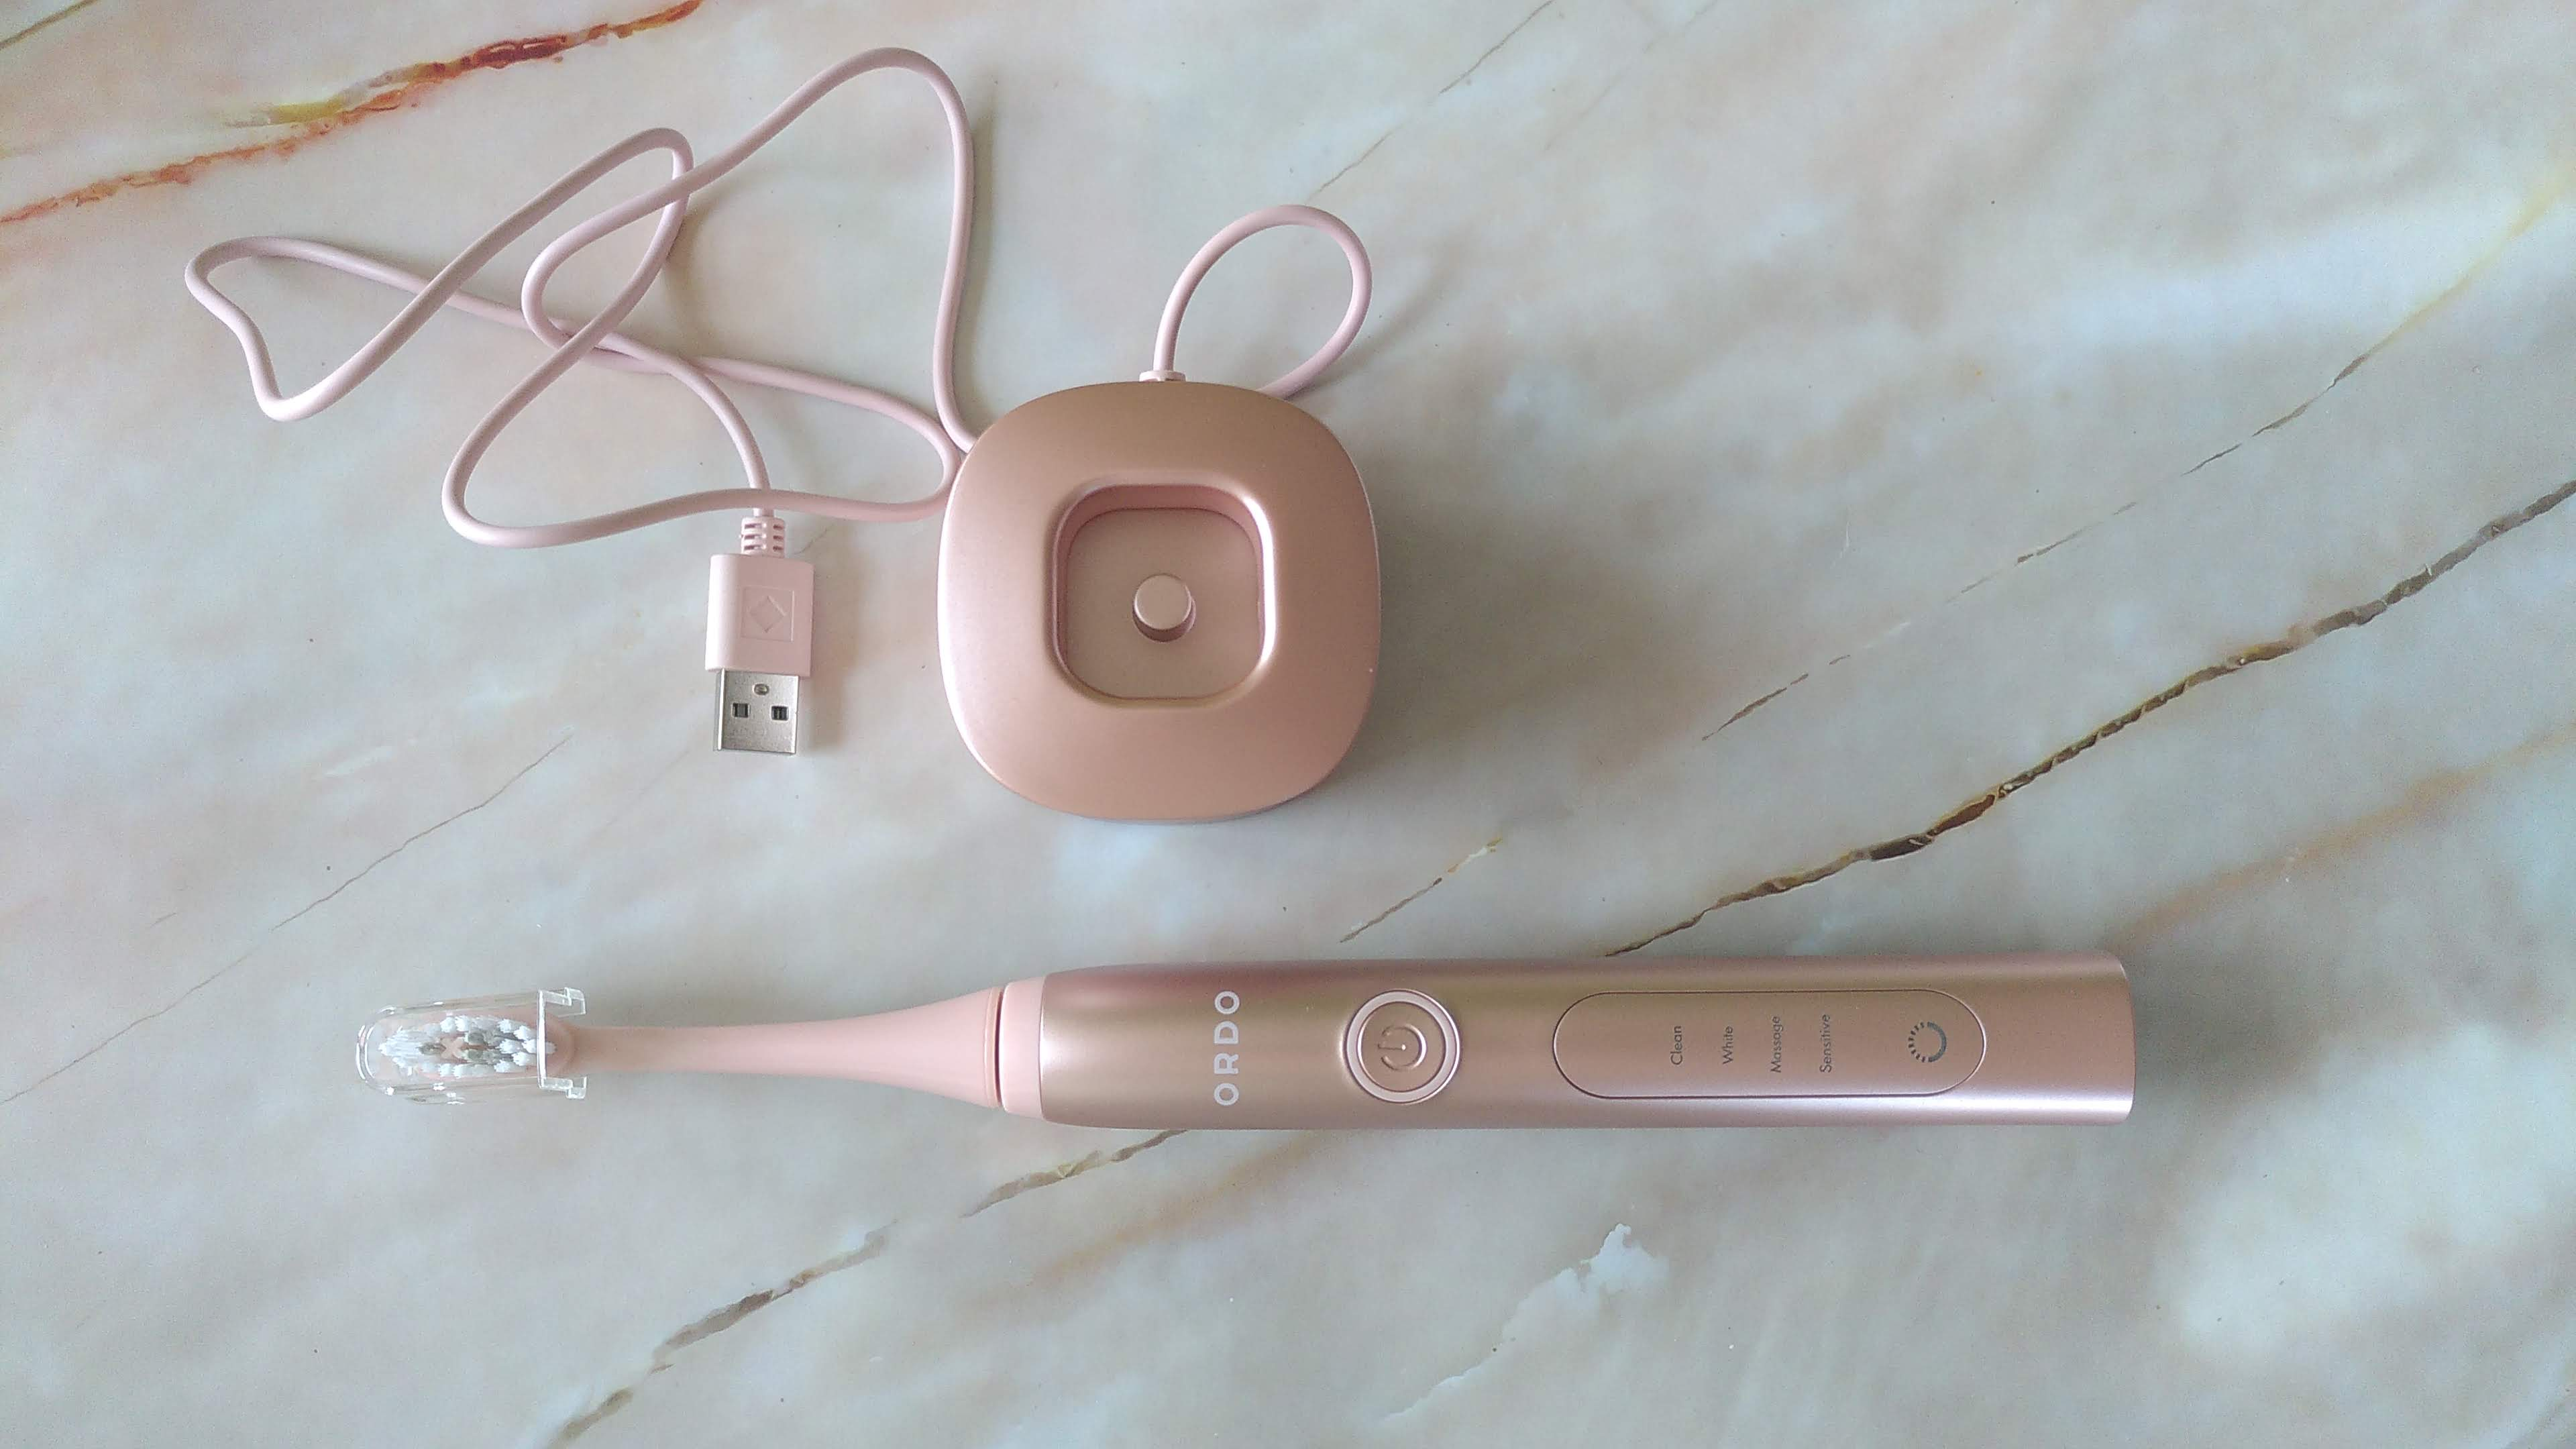 Ordo Sonic+ electric toothbrush with charger